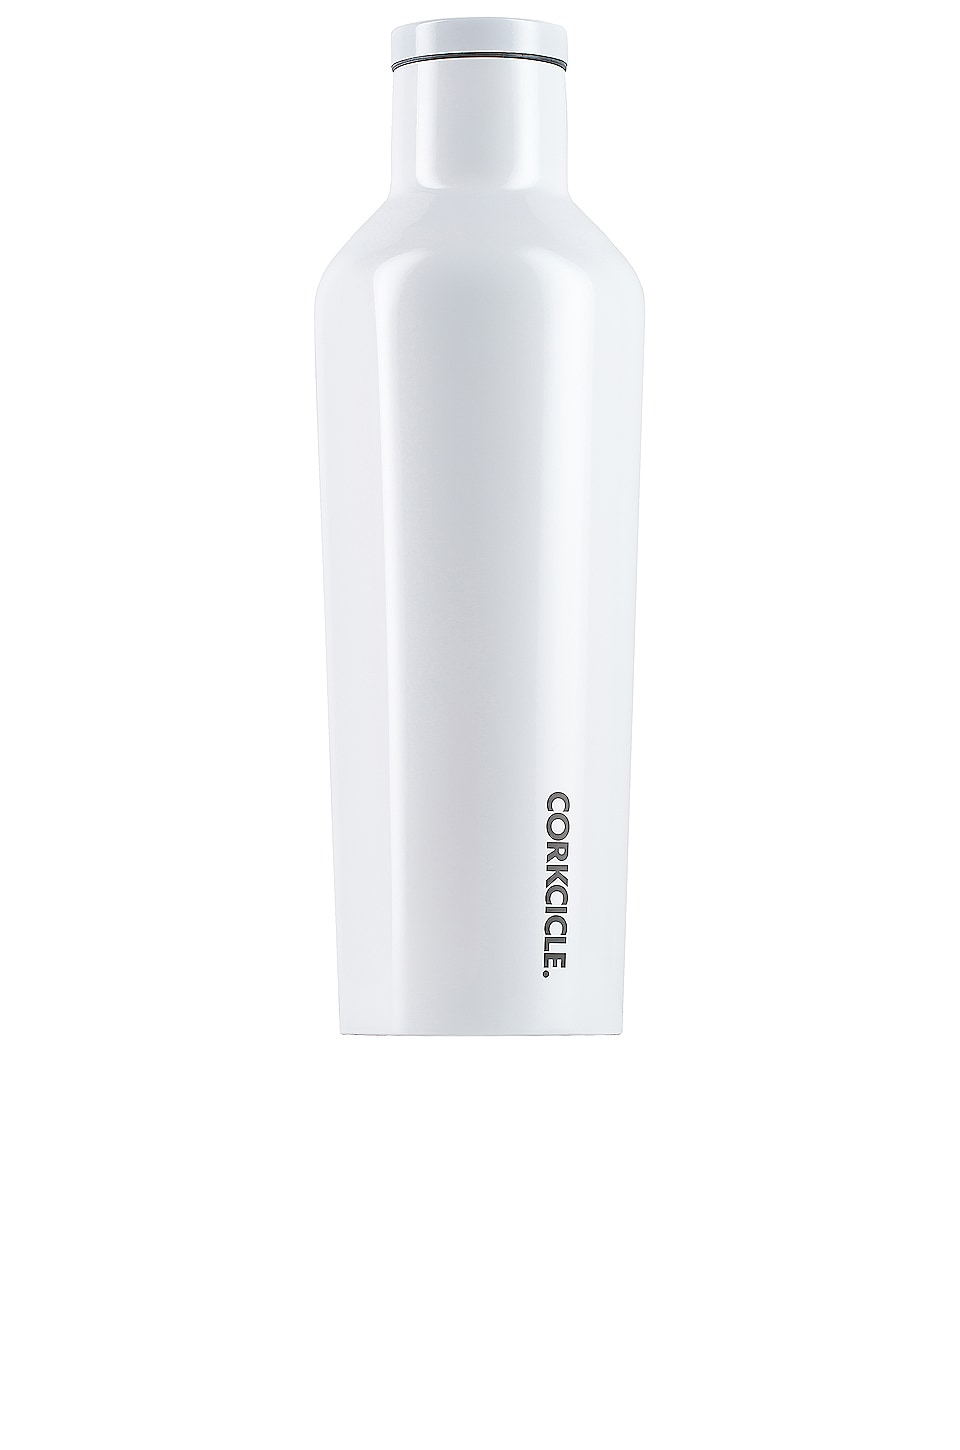 Corkcicle 16oz Canteen in Modernist White